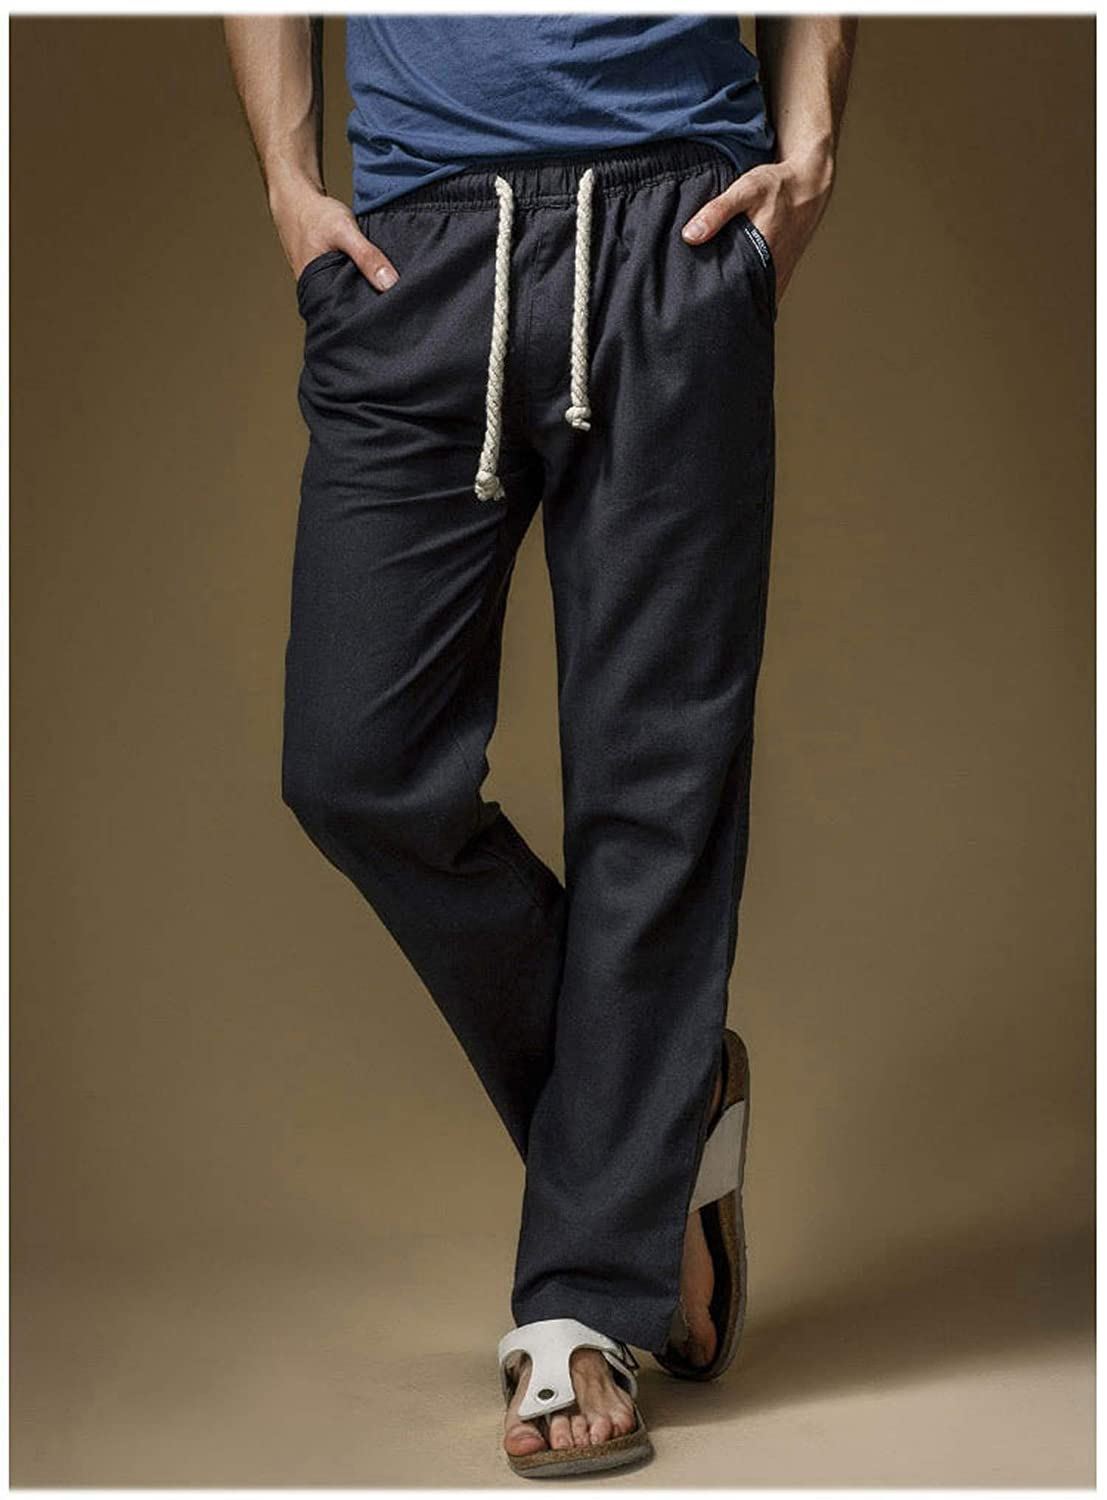 Dendrobium 2019 Summer Linen Mens Loose Breathing Pants Casual Thin Straight Trouser Pants for Men